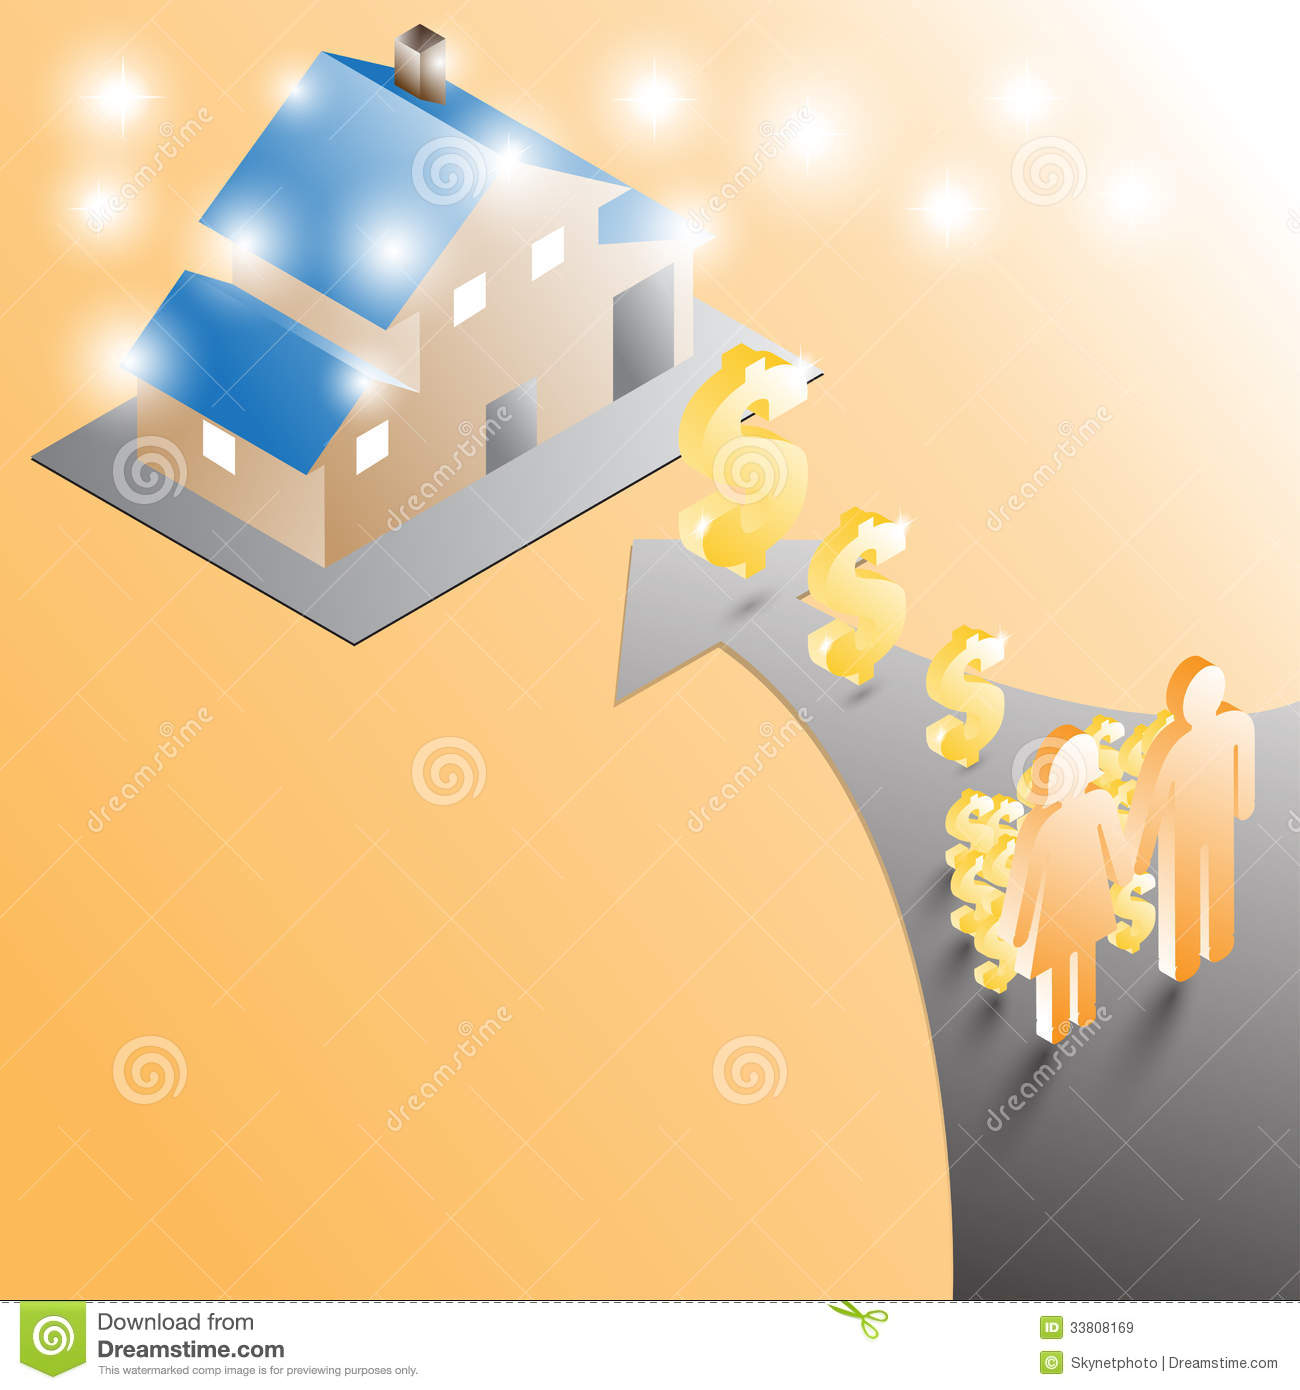 Future plan family concept royalty free stock images for Future planner online